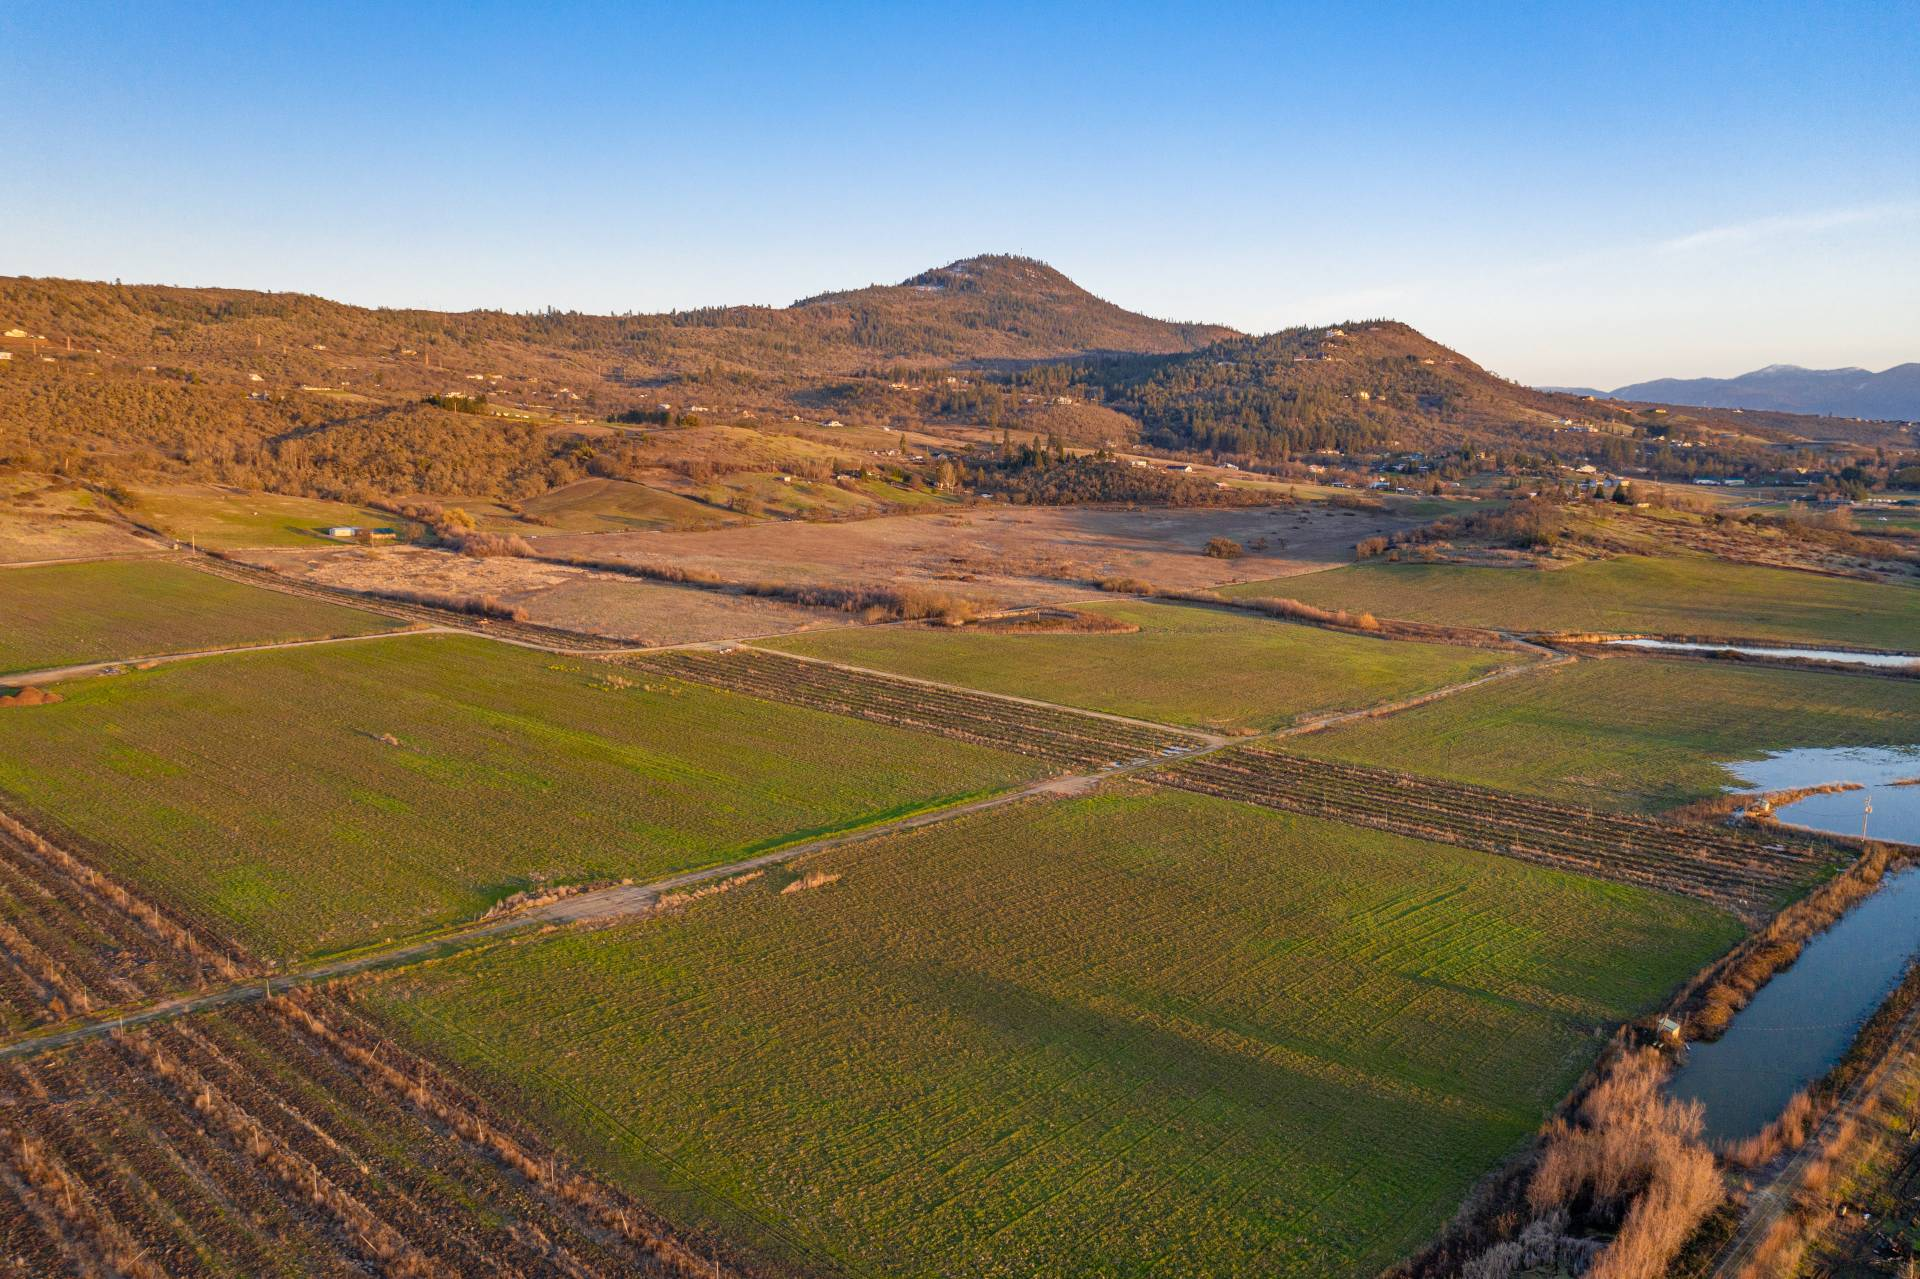 Foothills Irrigated Farm – South Offering